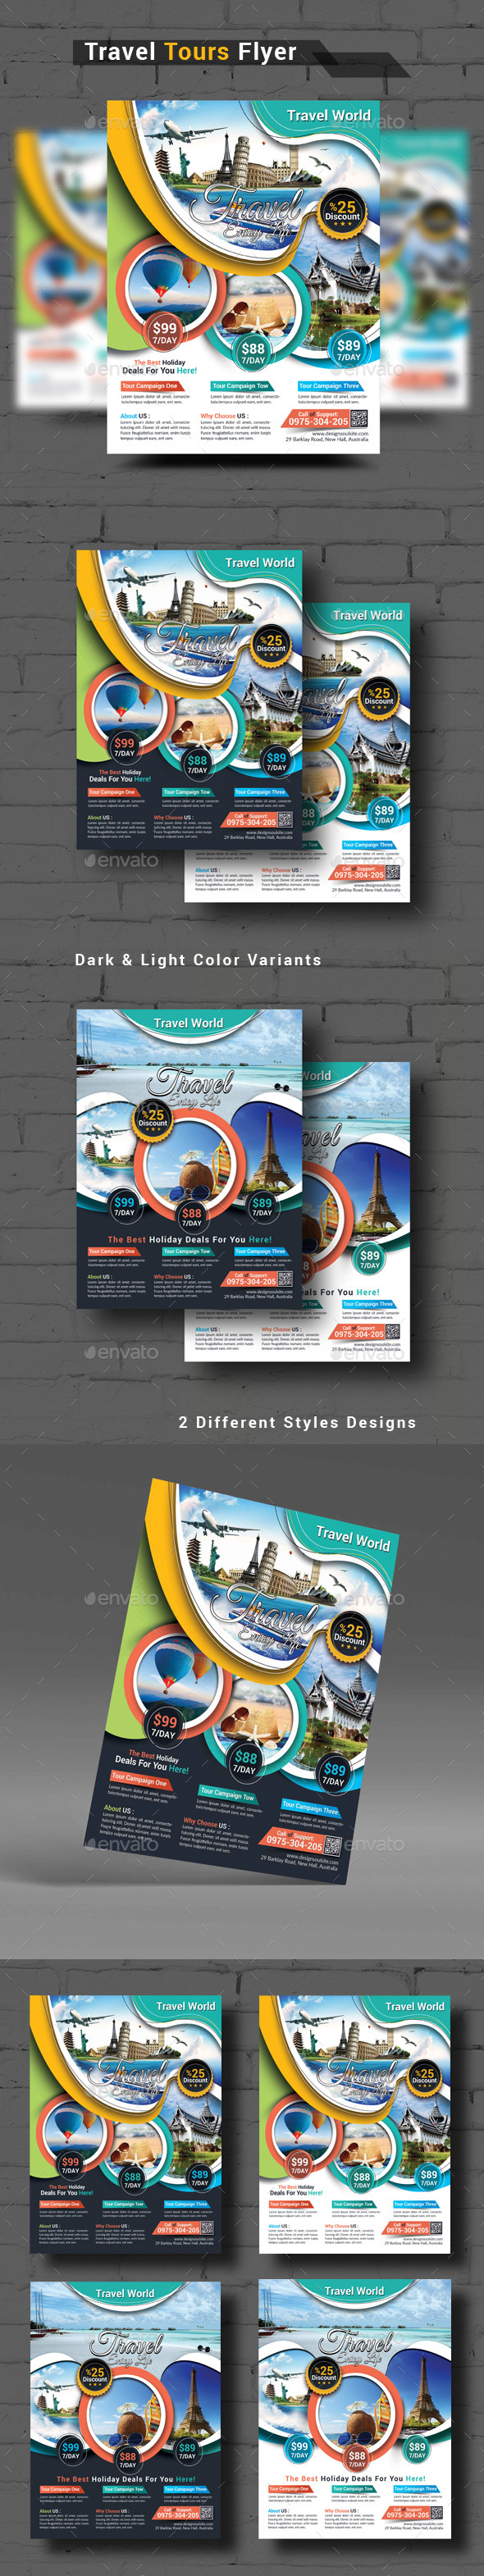 Travel Tours Flyer - Corporate Flyers